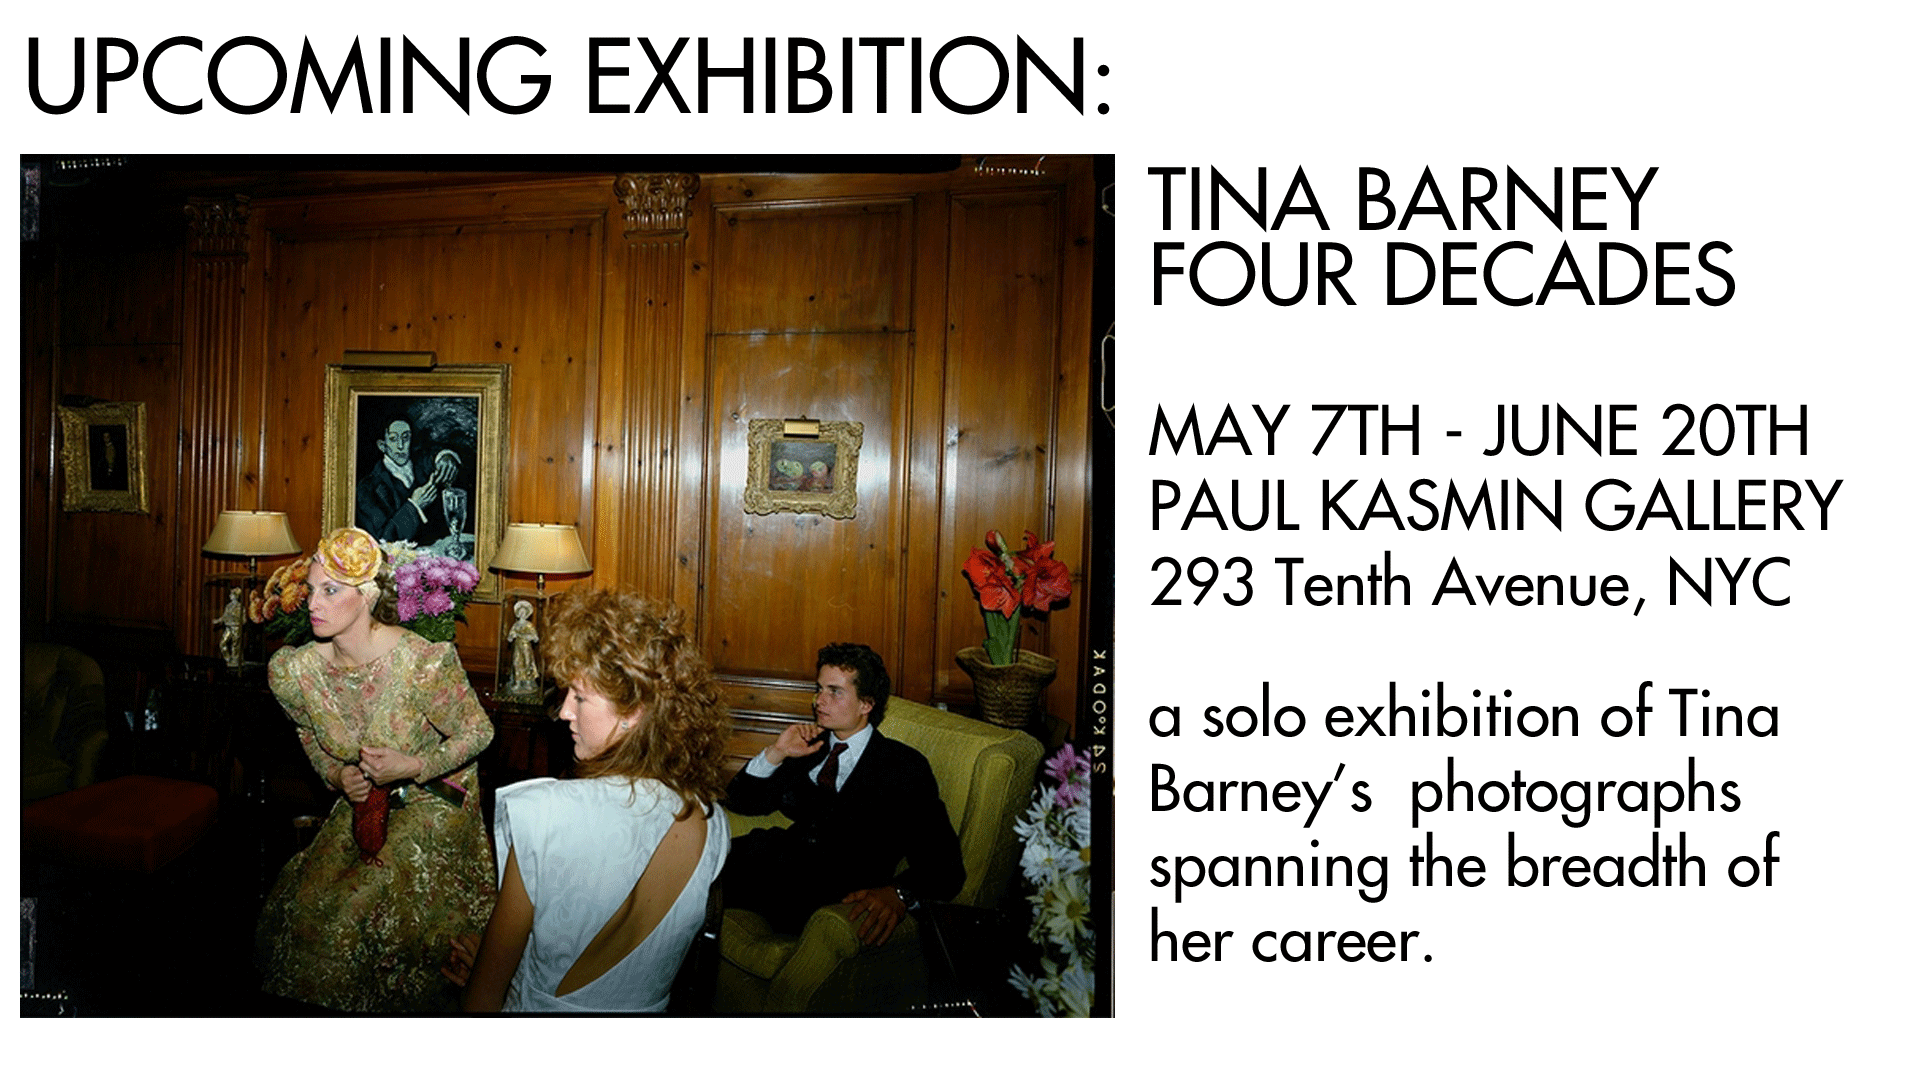 Upcoming Exhibition: Tina Barney